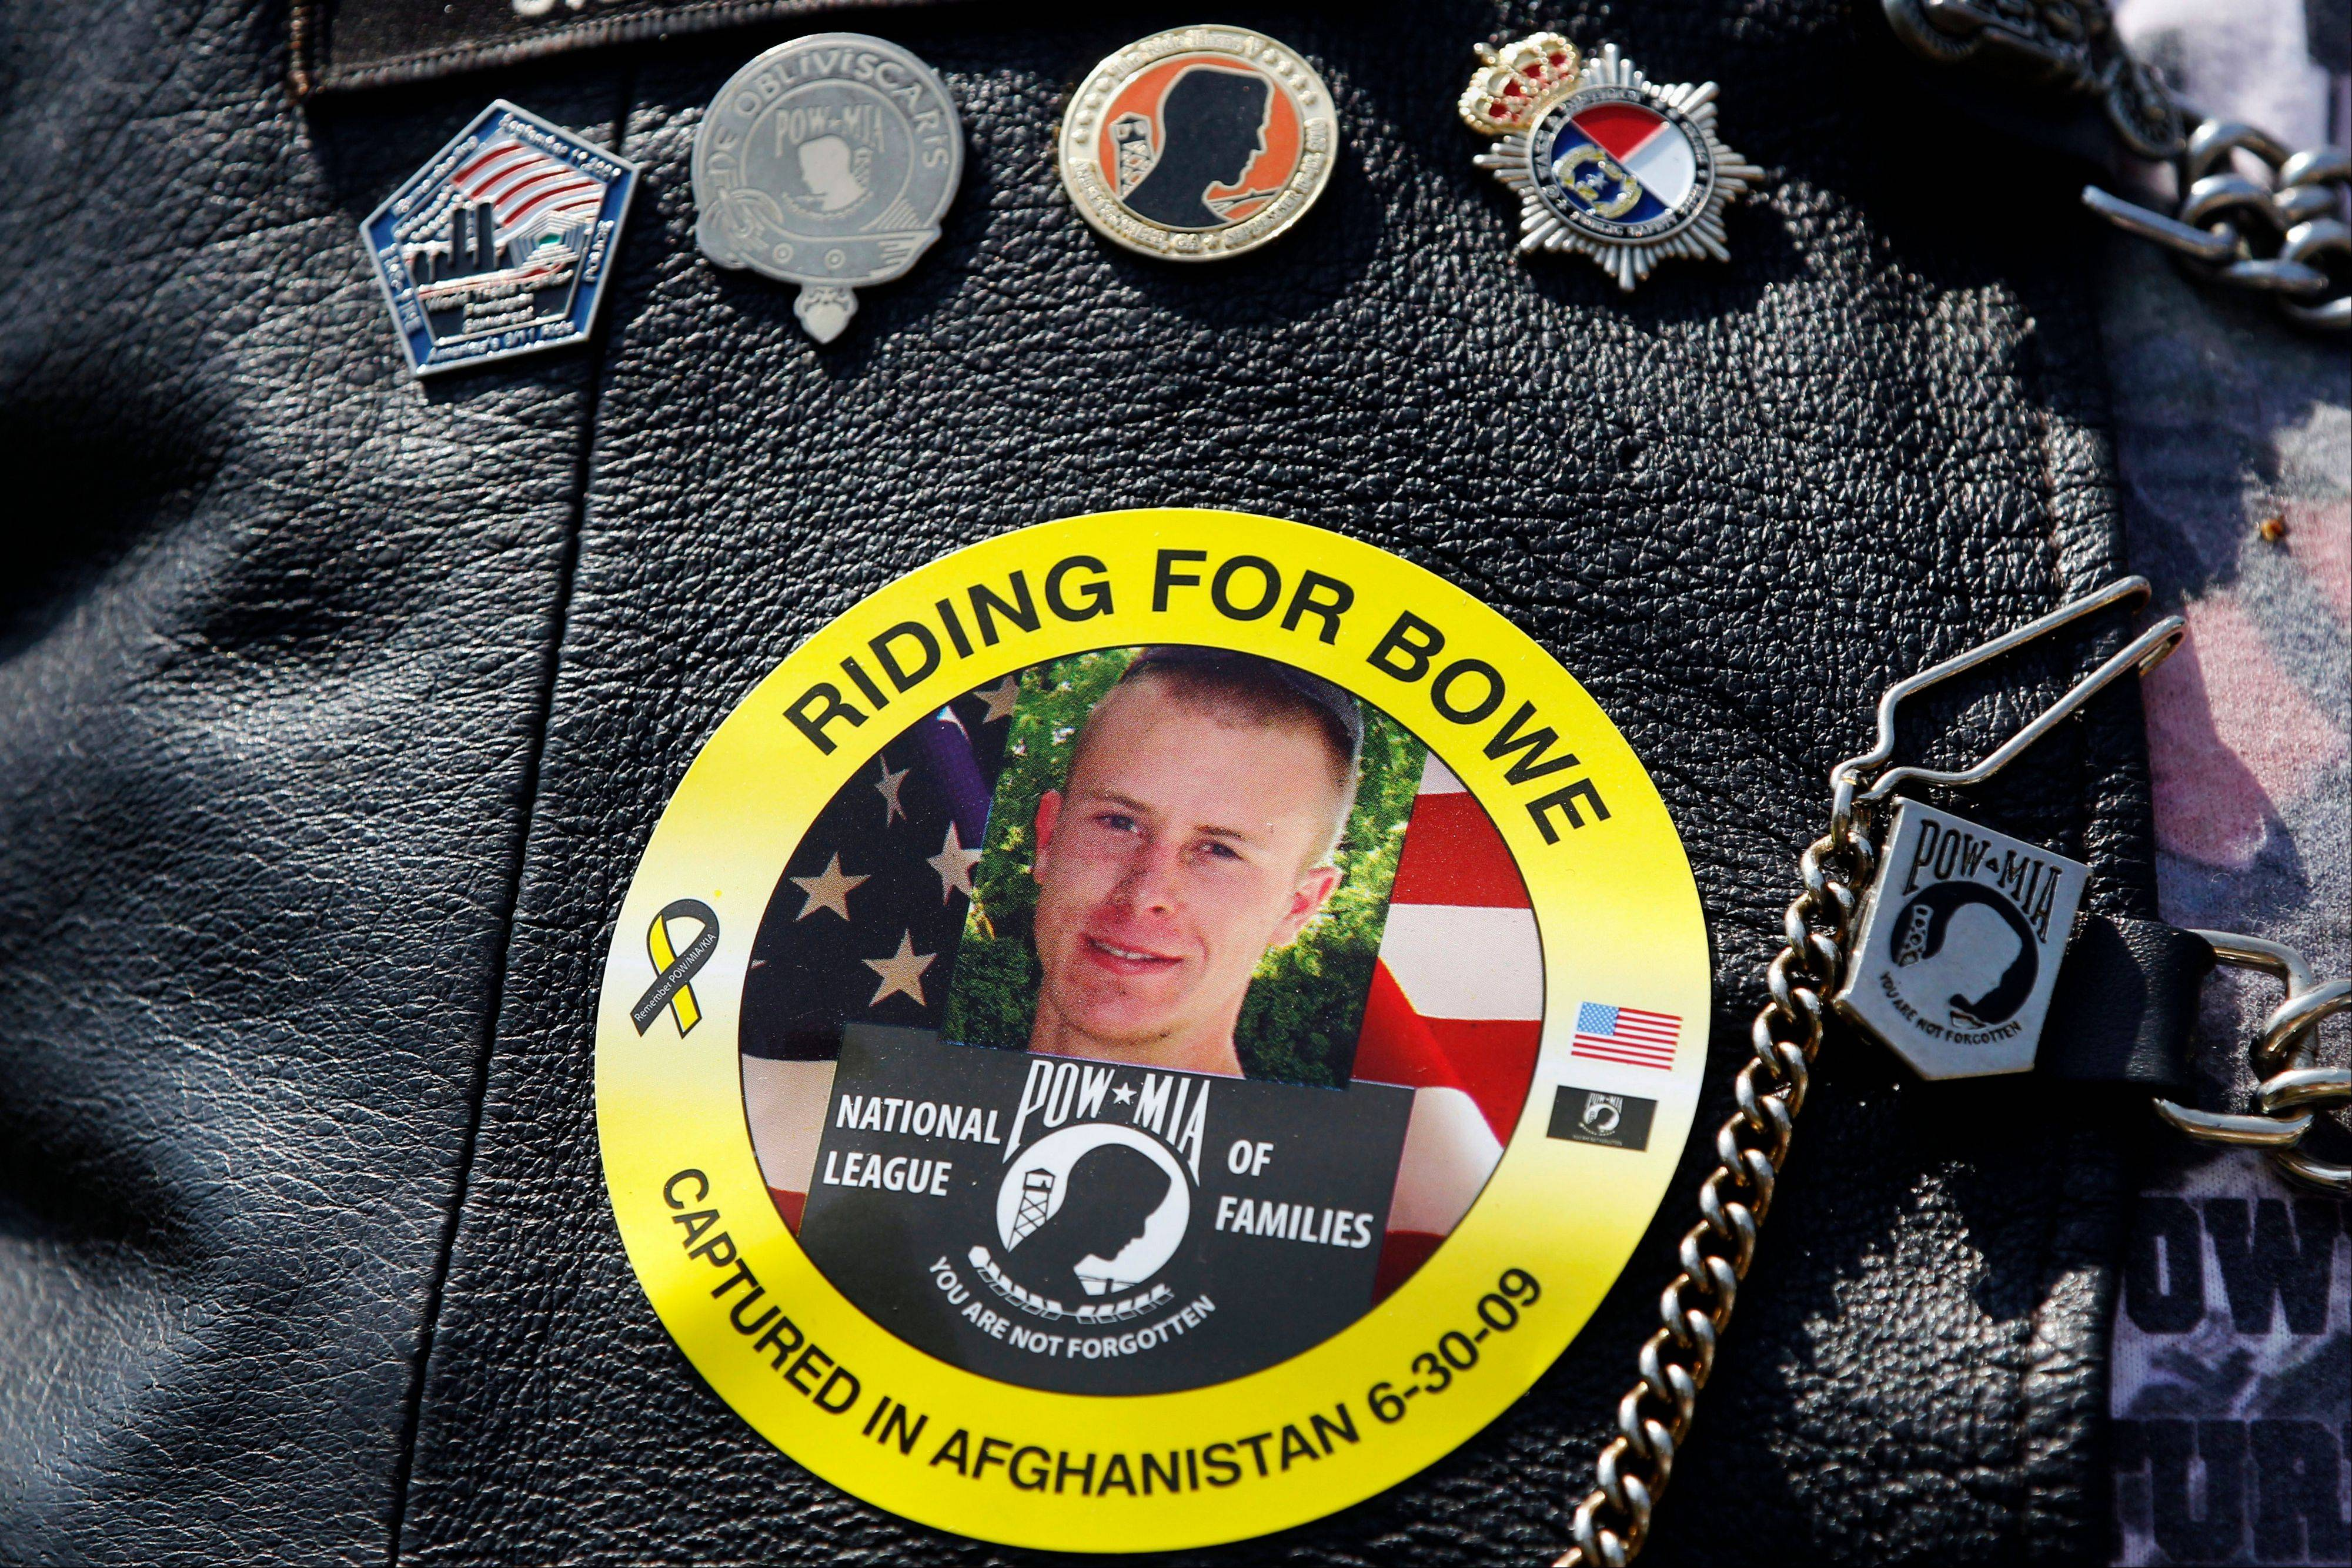 An image of Army Sgt. Bowe Bergdahl of Hailey, Idaho, who is being held captive in Afghanistan, is worn at a rally for POW/MIA awareness. A Taliban spokesman said Thursday they are ready to hand over U.S. Army Sgt. Bowe Bergdahl held captive since 2009 in exchange for five of their senior operatives being held at the Guantanamo Bay p